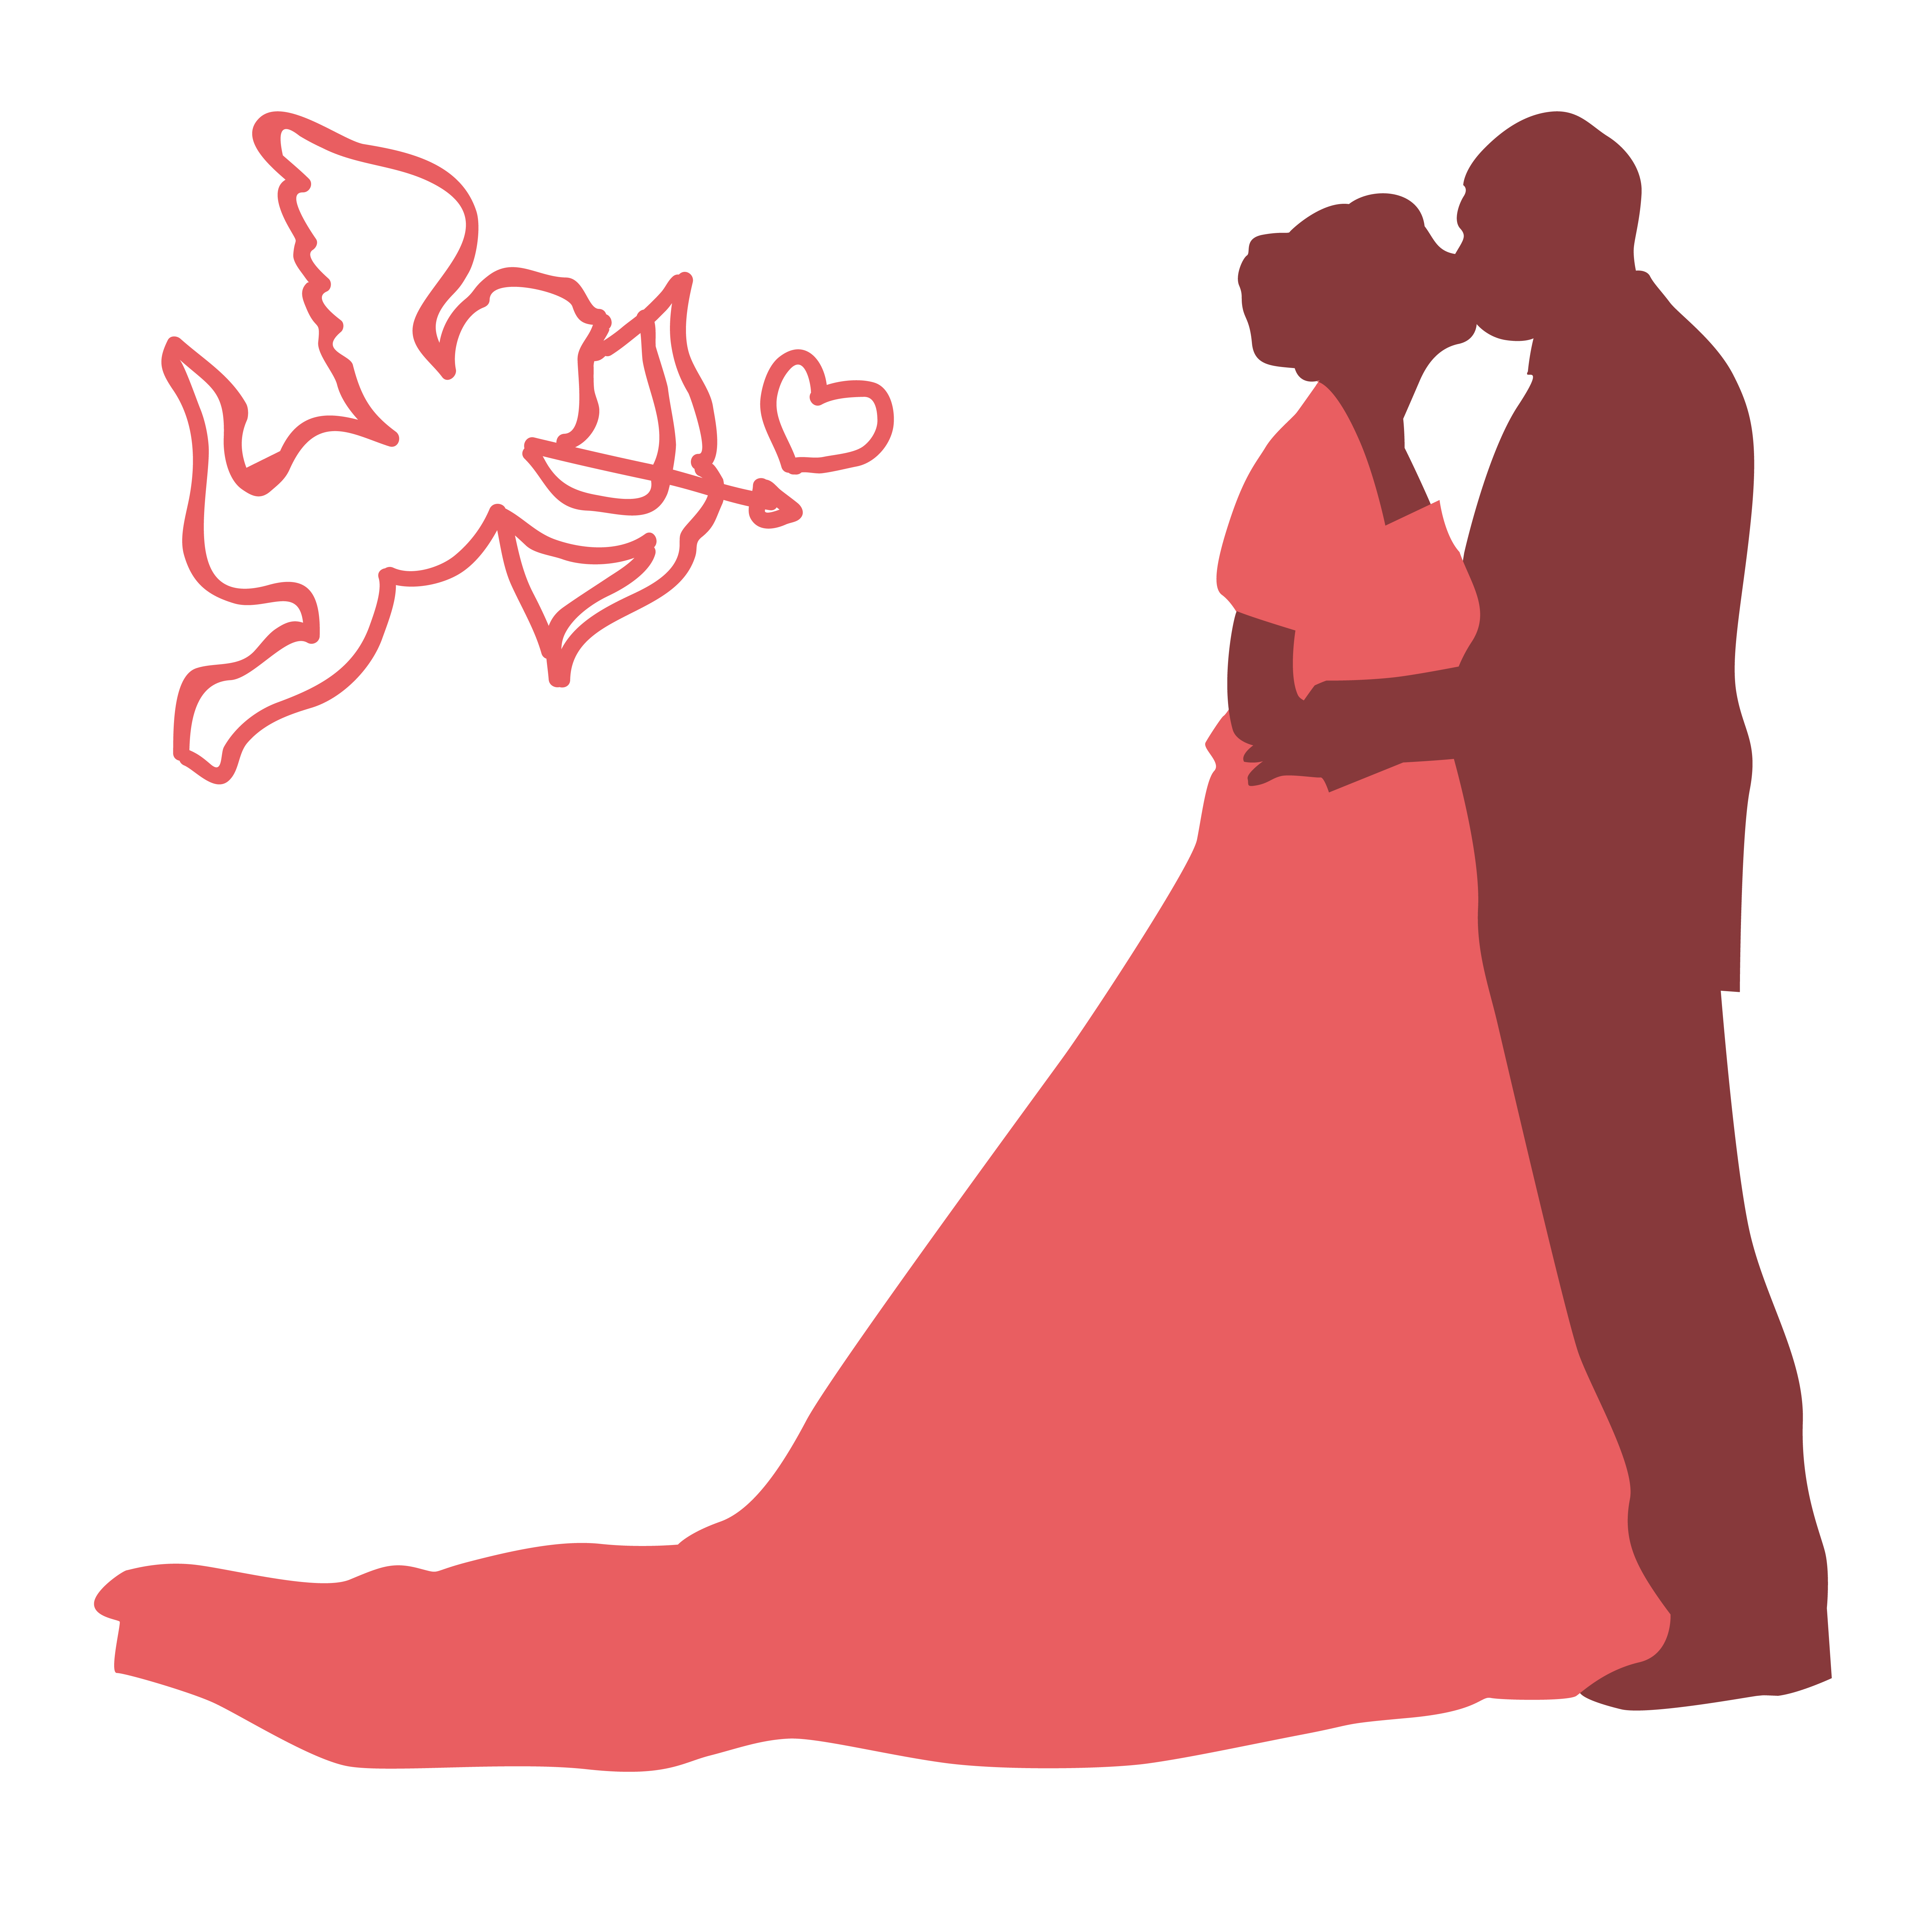 Silhouette clip art people. Clipart wedding person